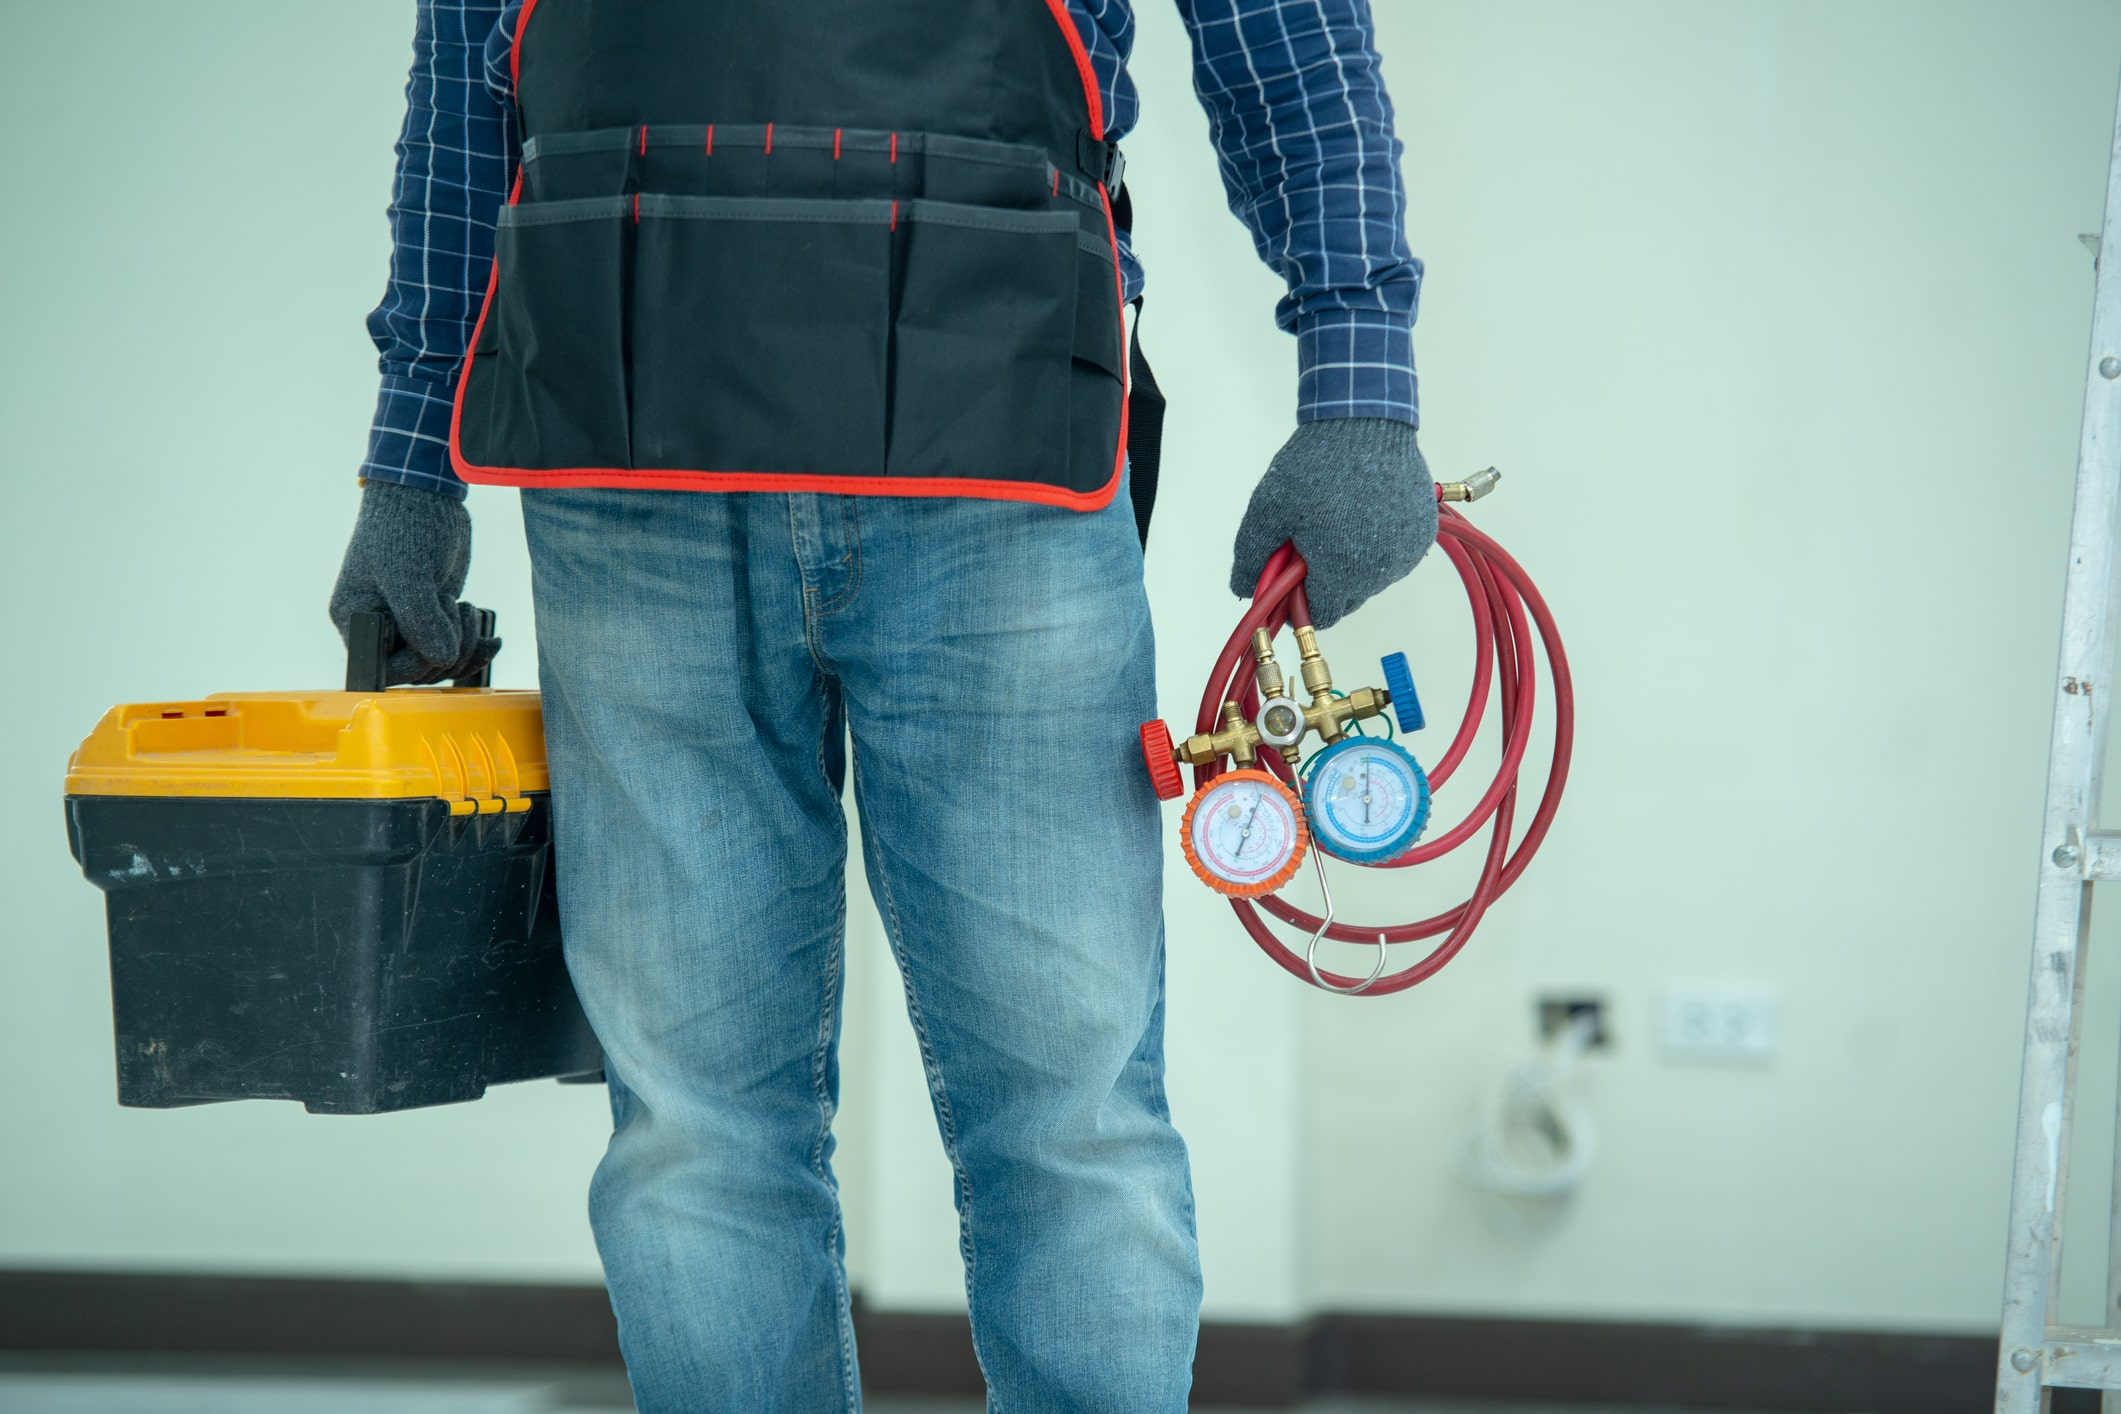 Cool Energy Costs with Routine HVAC Maintenance